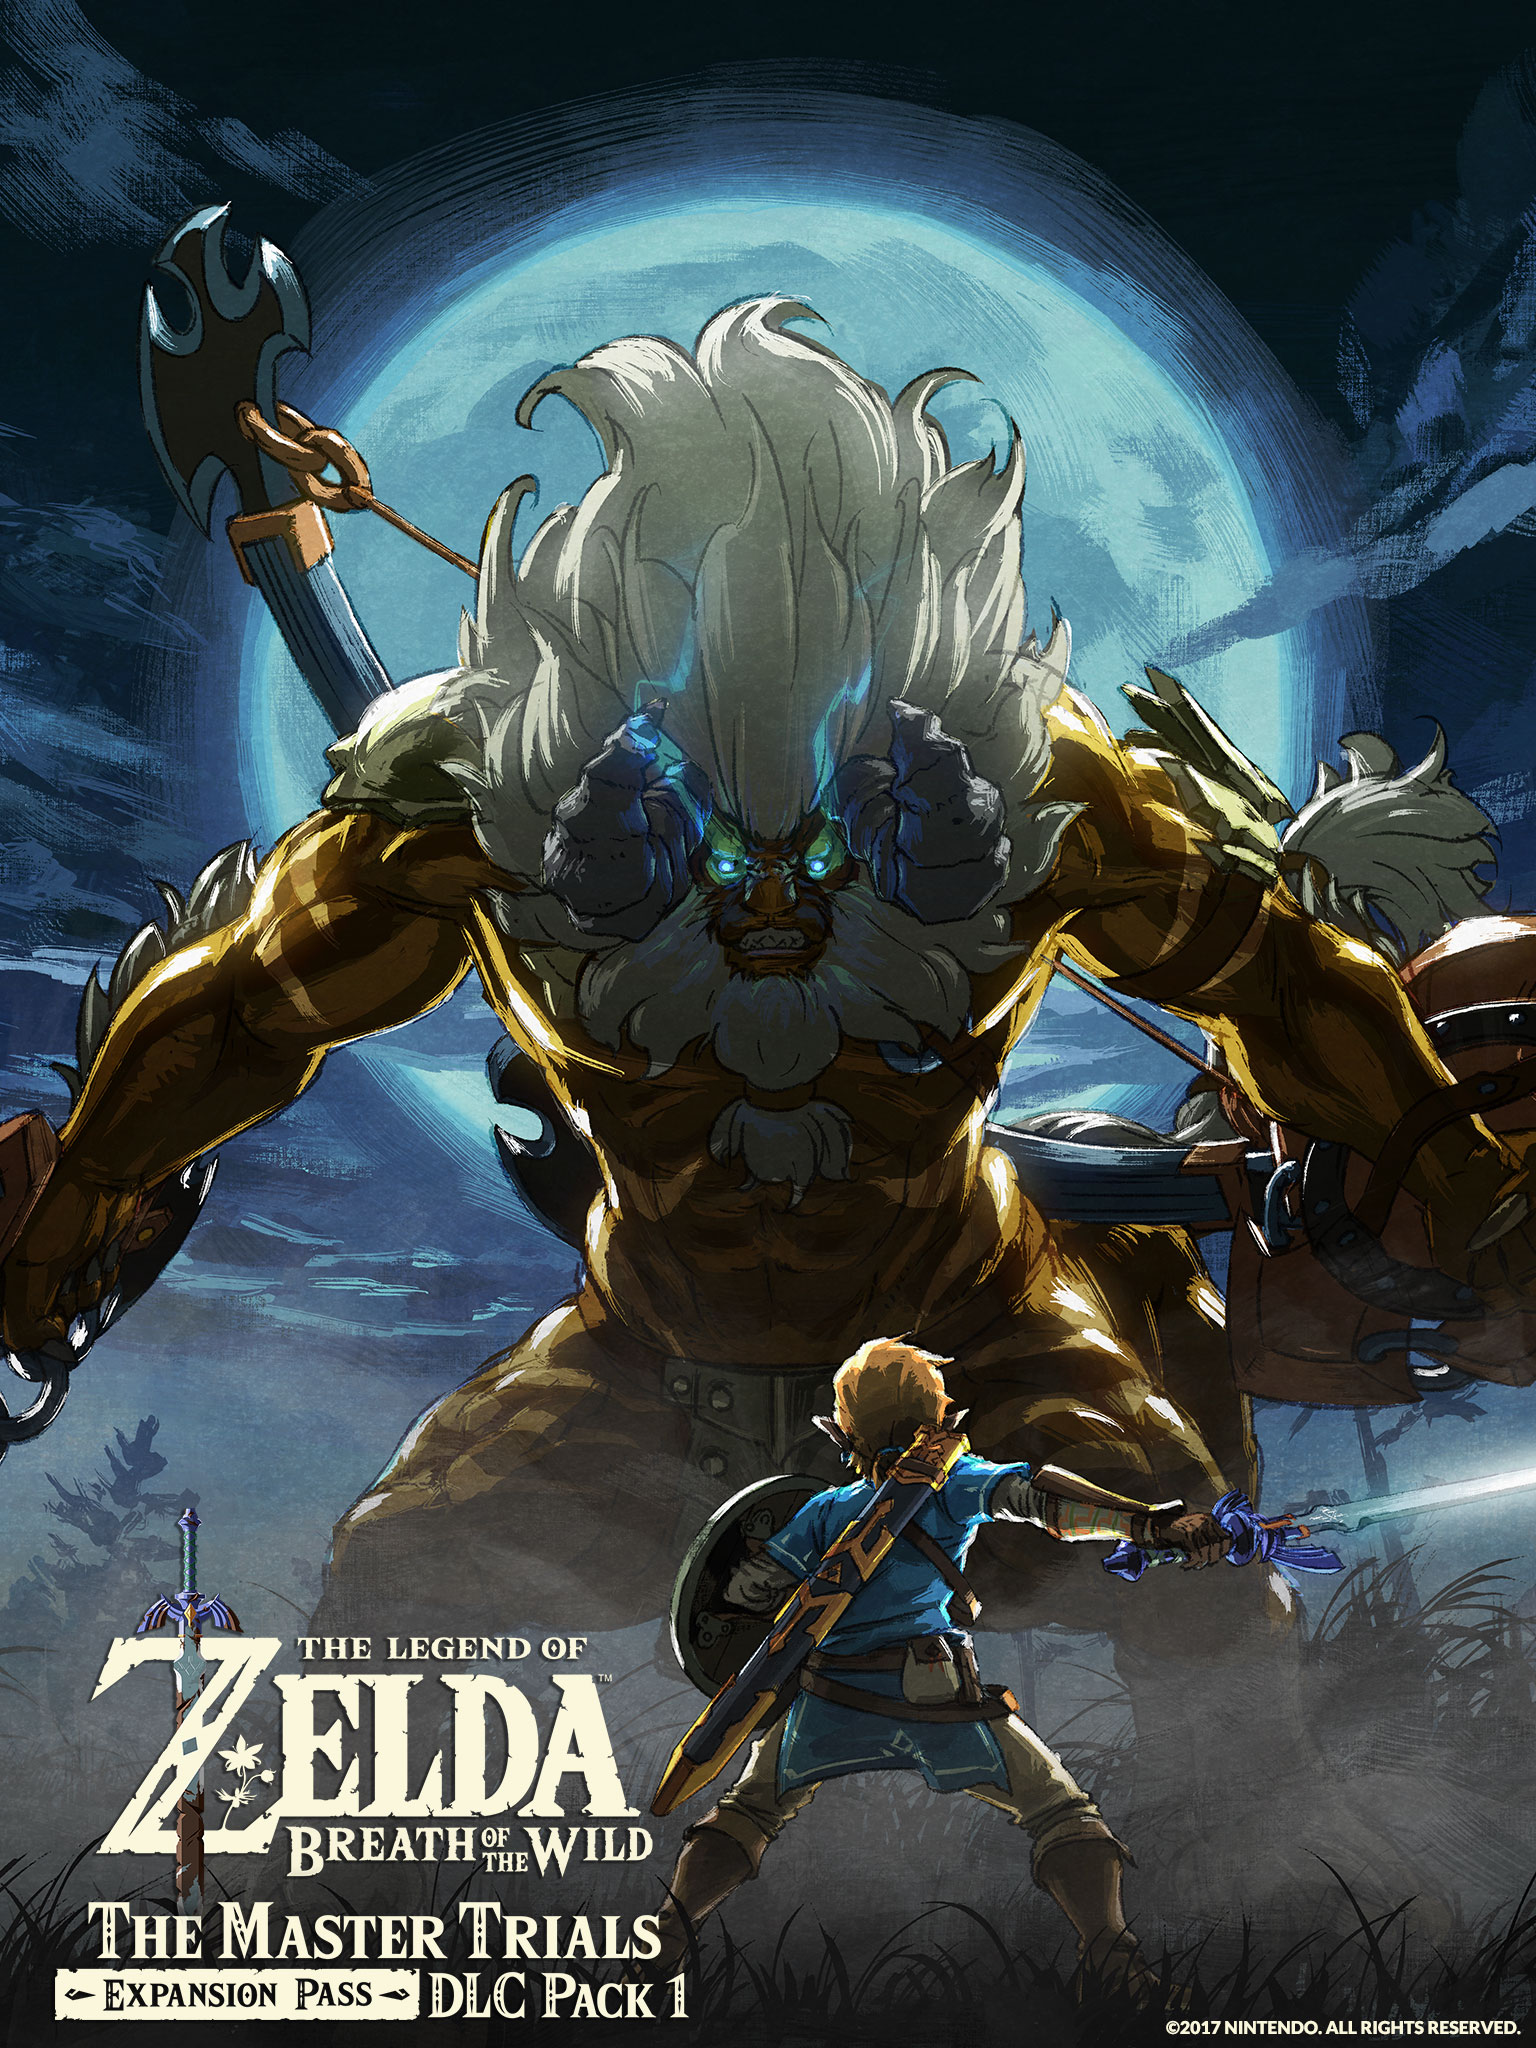 Dual Monitor Wallpaper Cool Girl The Legend Of Zelda Breath Of The Wild Pour Les Consoles